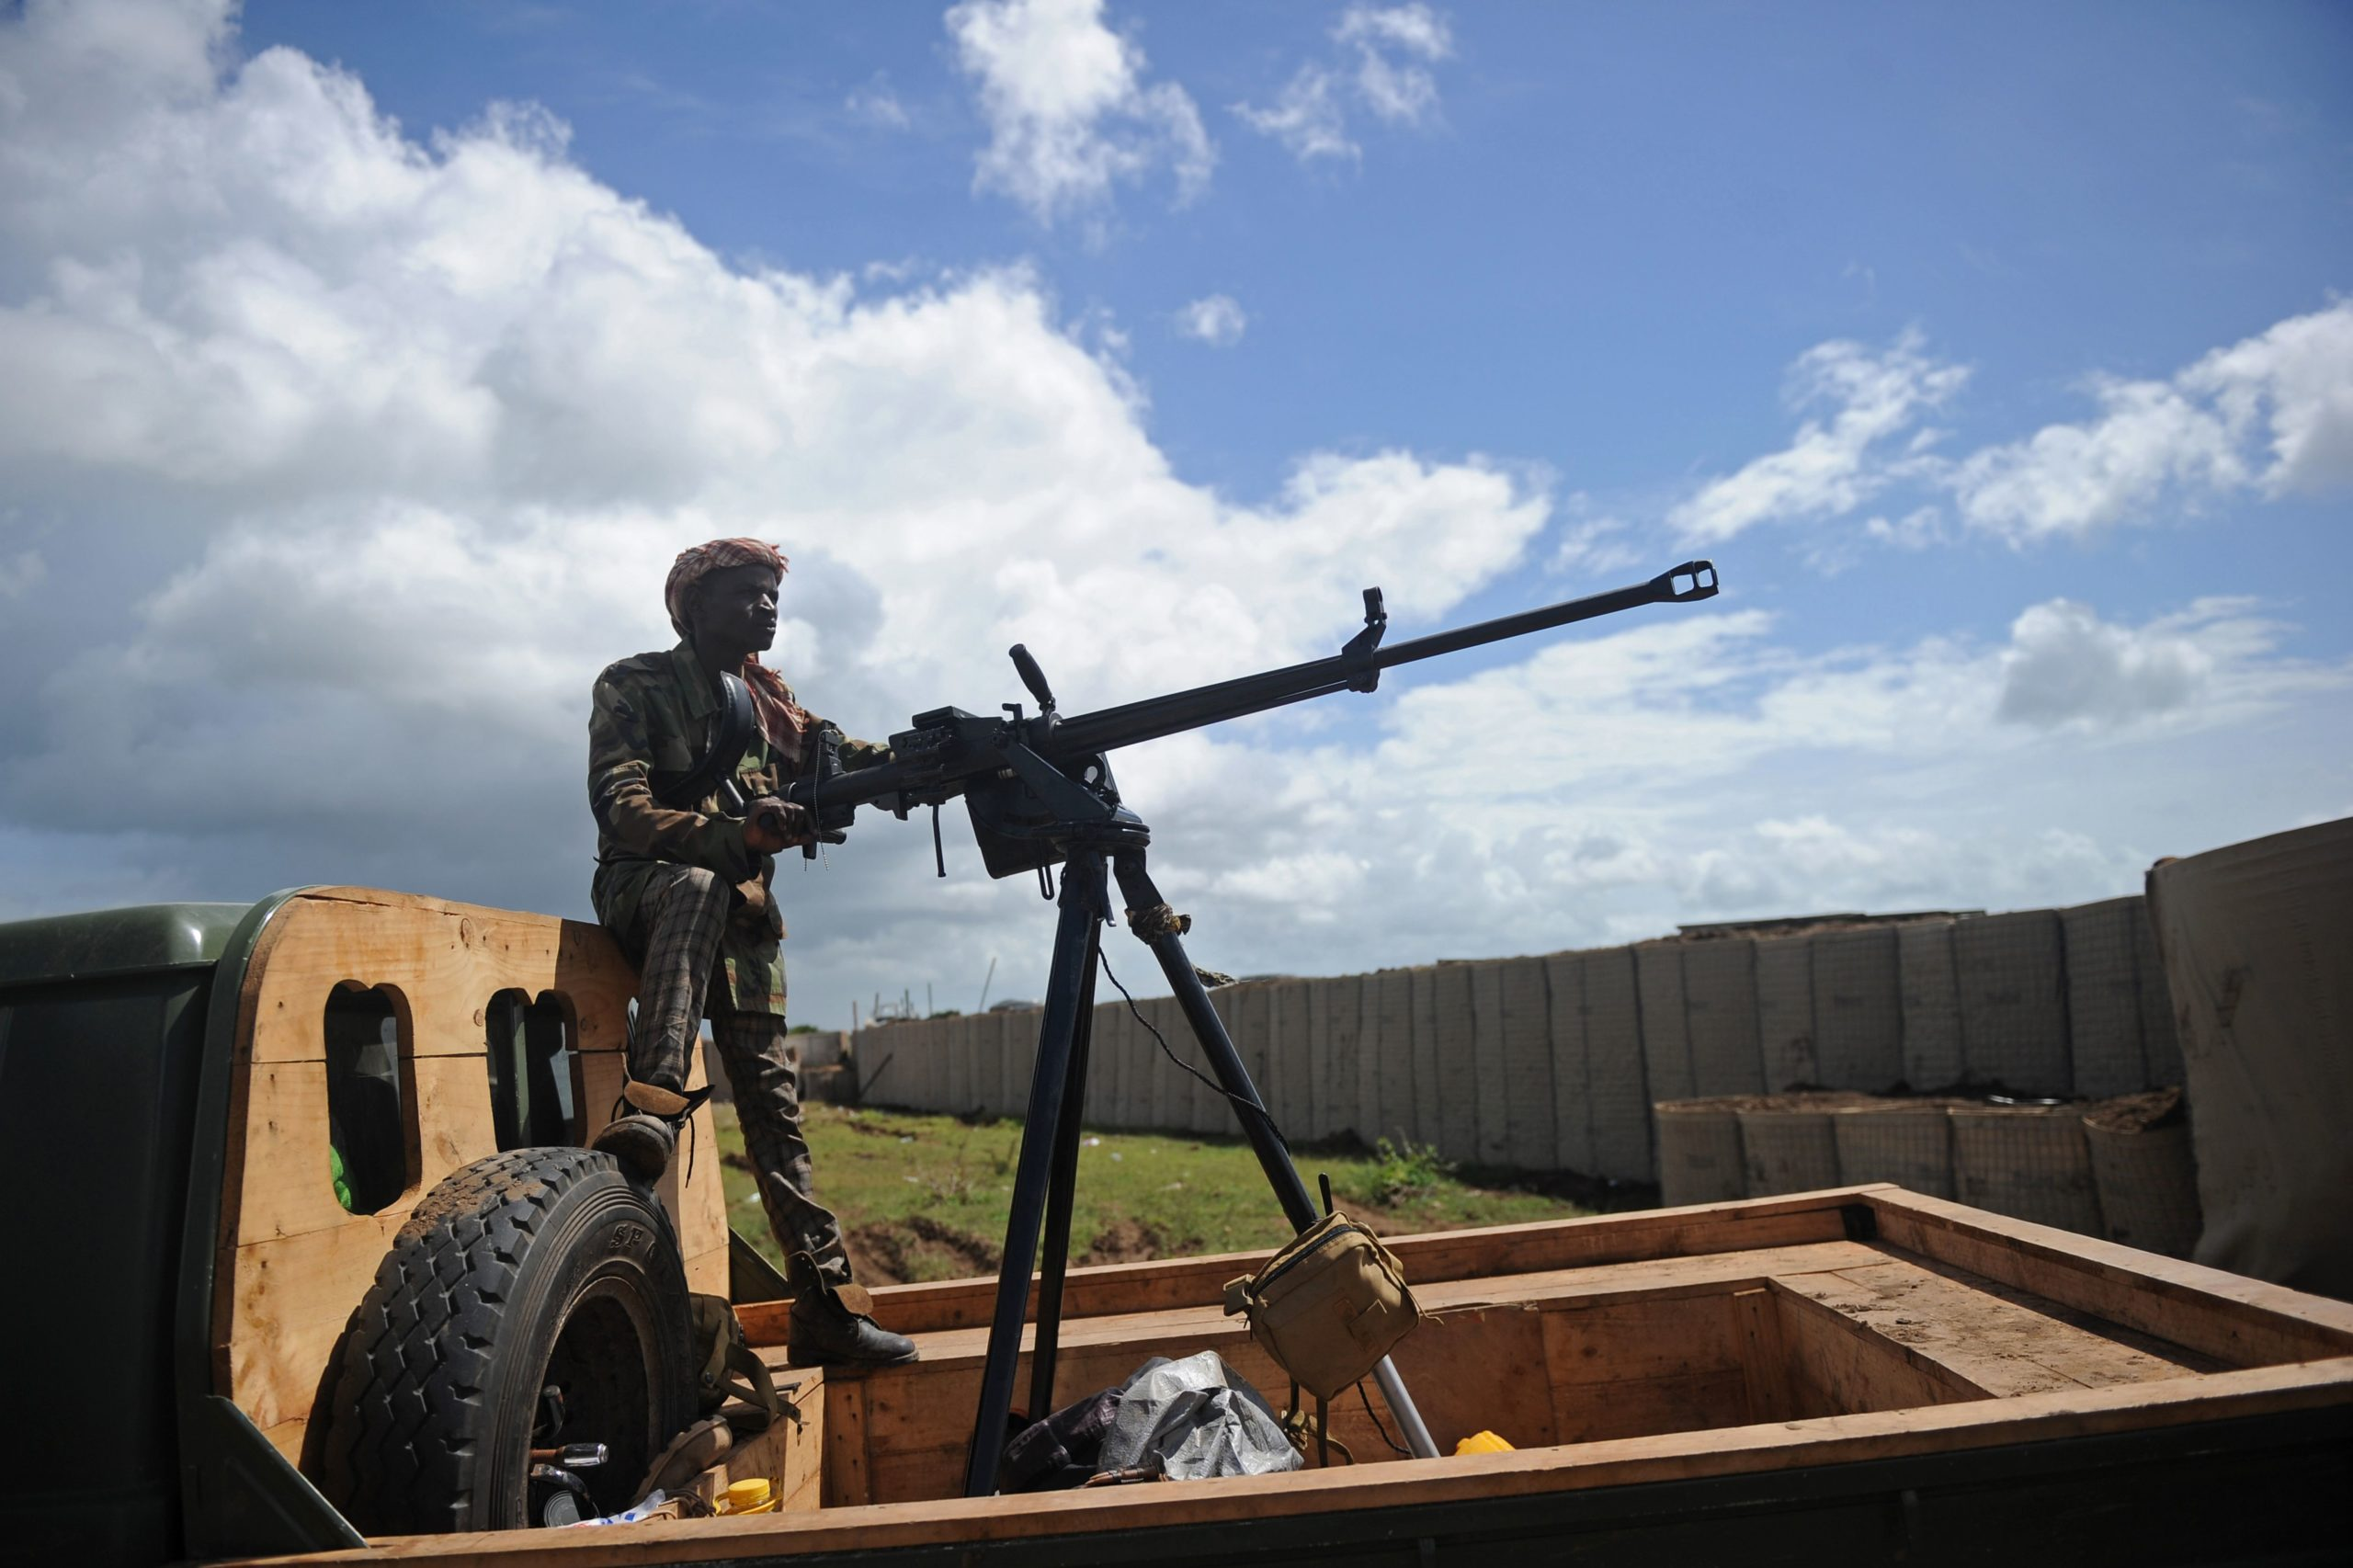 A Somali soldier holds a machine gun at Sanguuni military base, where an American special operations soldier was killed by a mortar attack on June 8, about 450 km south of Mogadishu, Somalia, on June 13, 2018. - More than 500 American forces are partnering with African Union Mission to Somalia (AMISOM) and Somali national security forces in counterterrorism operations, and have conducted frequent raids and drone strikes on Al-Shabaab training camps throughout Somalia. (MOHAMED ABDIWAHAB/AFP via Getty Images)